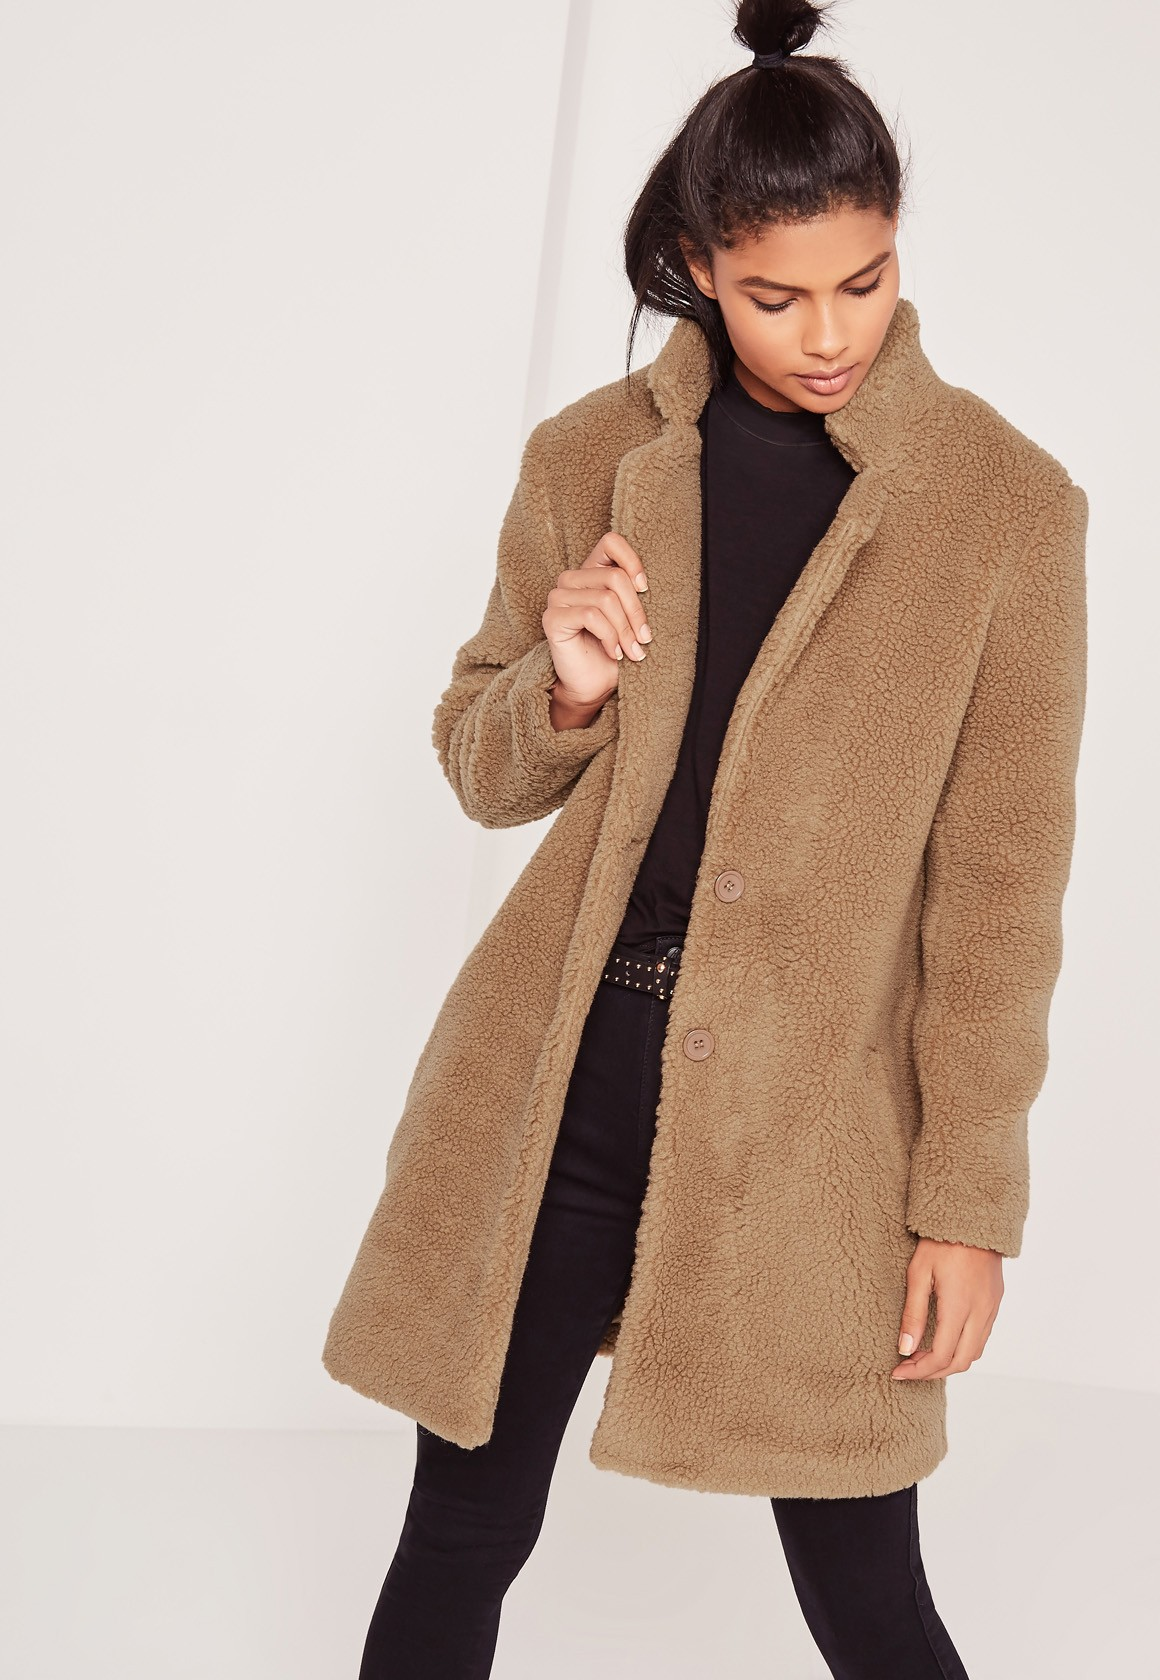 How to Buy a Shearling Coat When the Rent Is Due - Racked